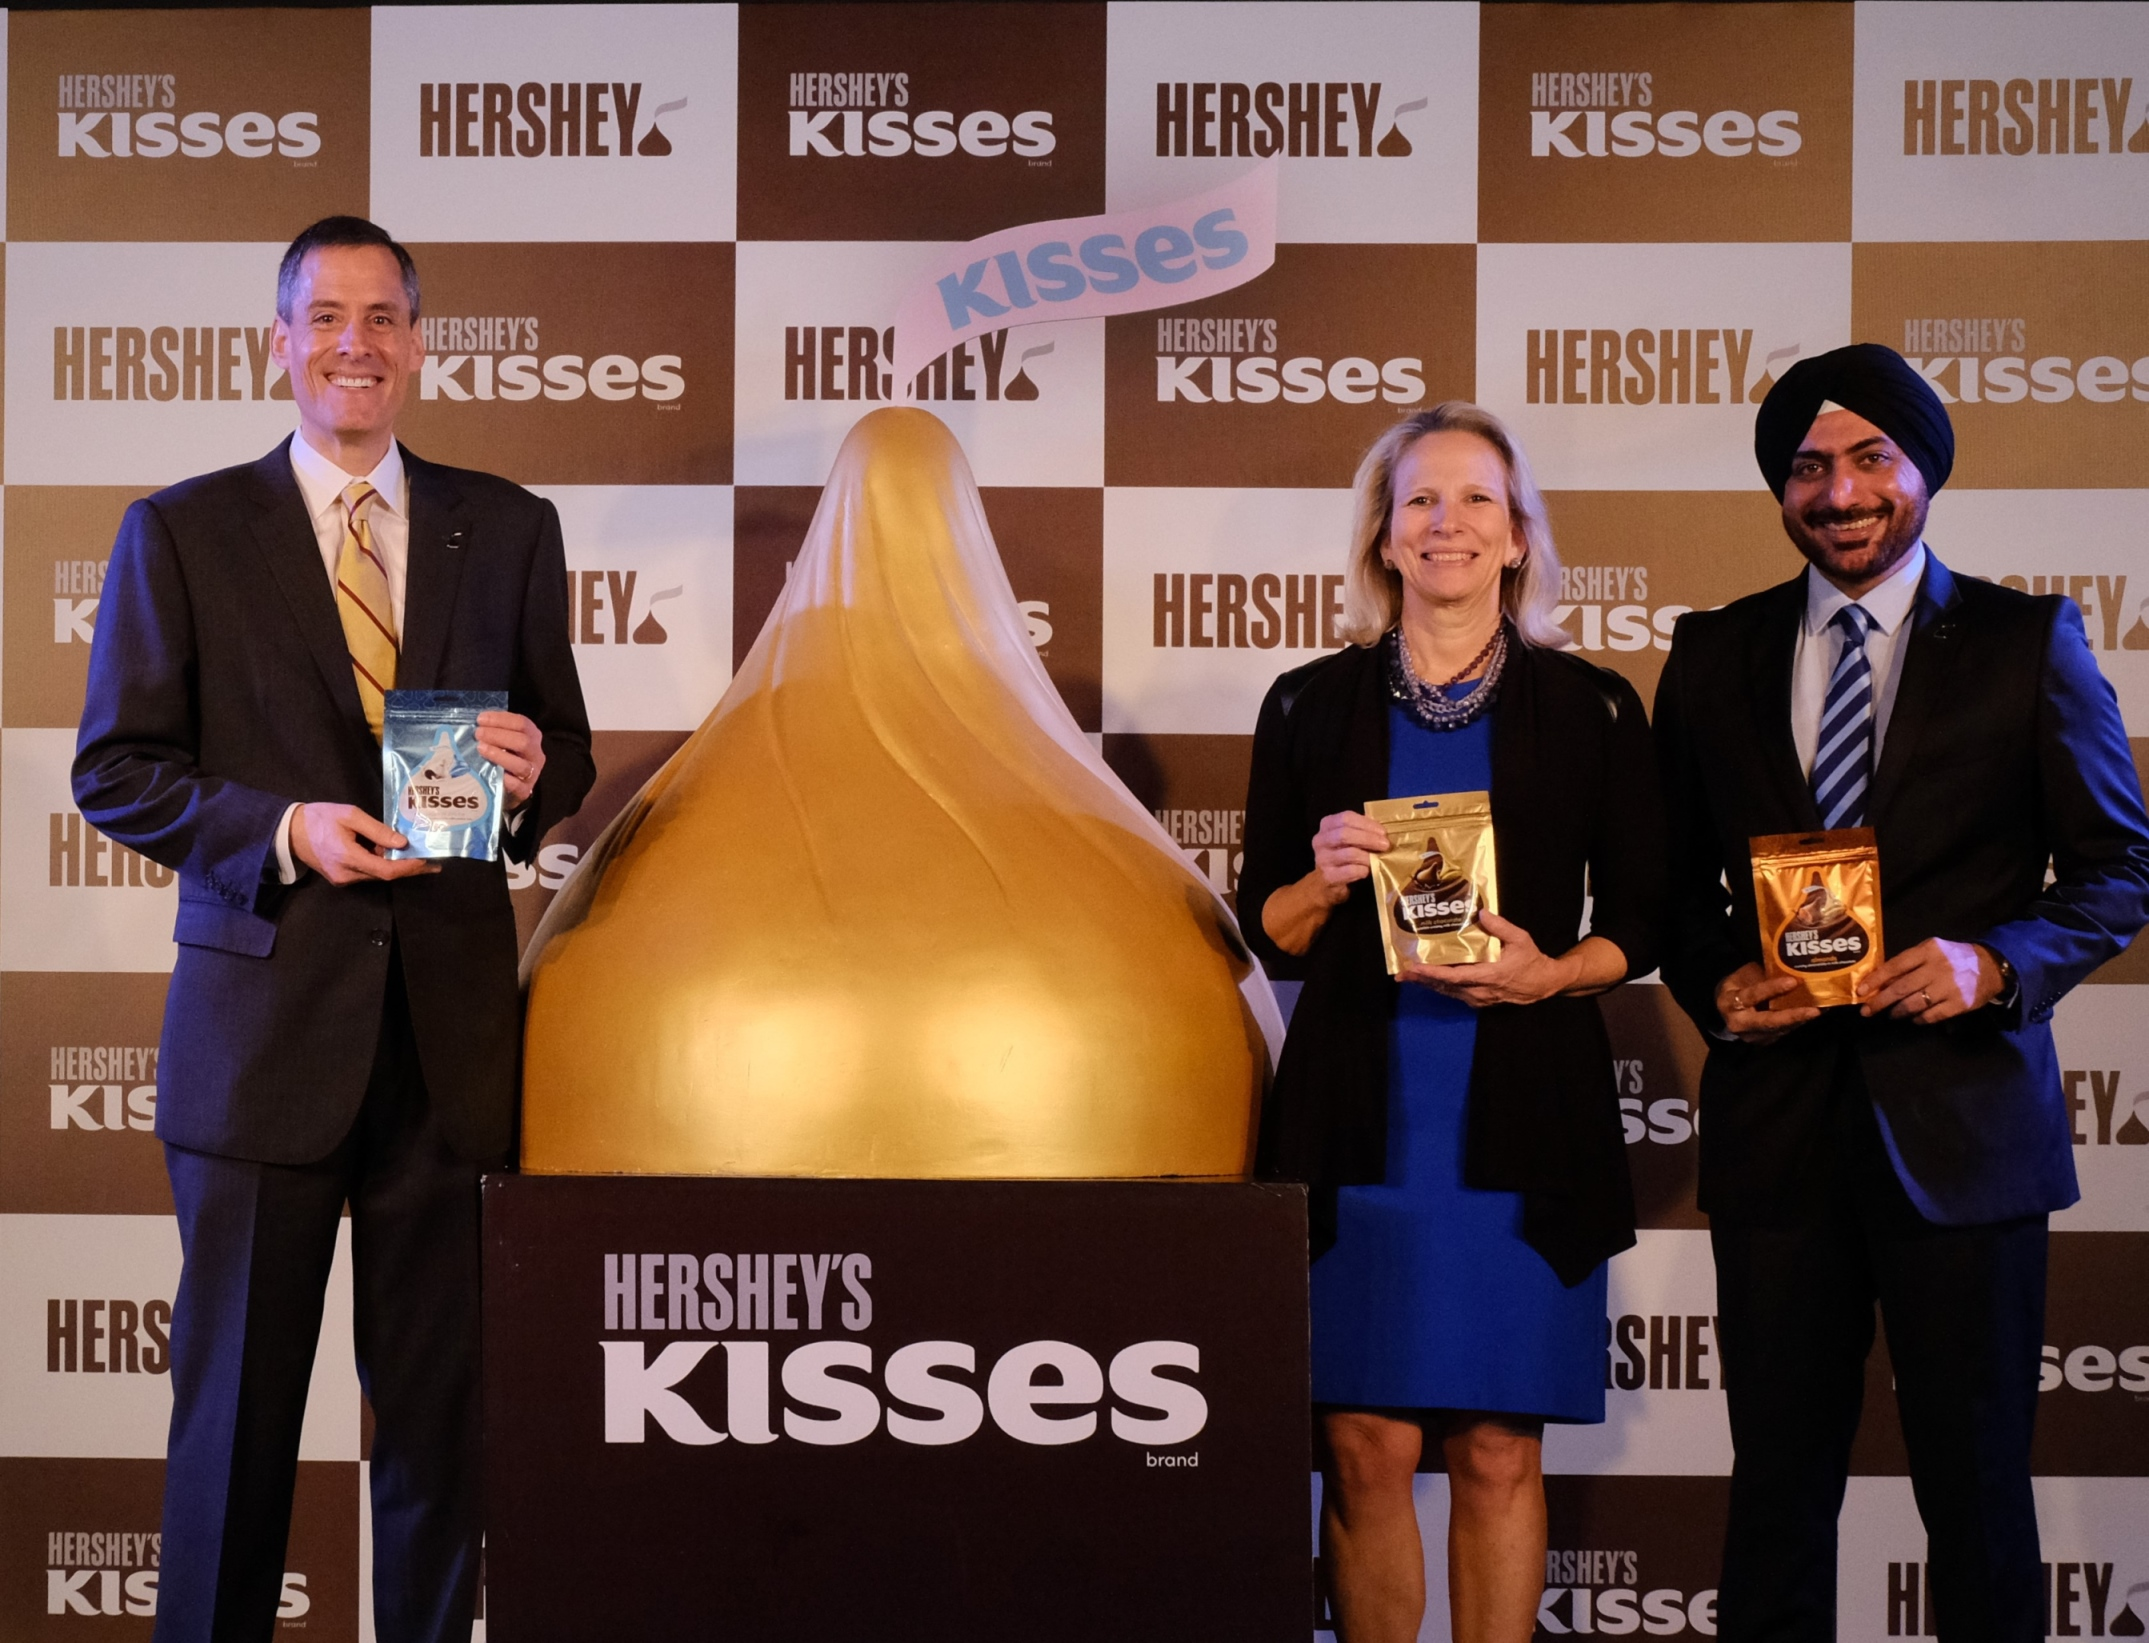 L-R-Steven-Schiller-President-International-The-Hershey-Company-Michele-Buck-President-and-CEO-The-Hershey-Company-and-Herjit-Bhalla-MD-Hershey-India-at-the-launch-of-Hersheys-Kisses.jpg October 17, 2018